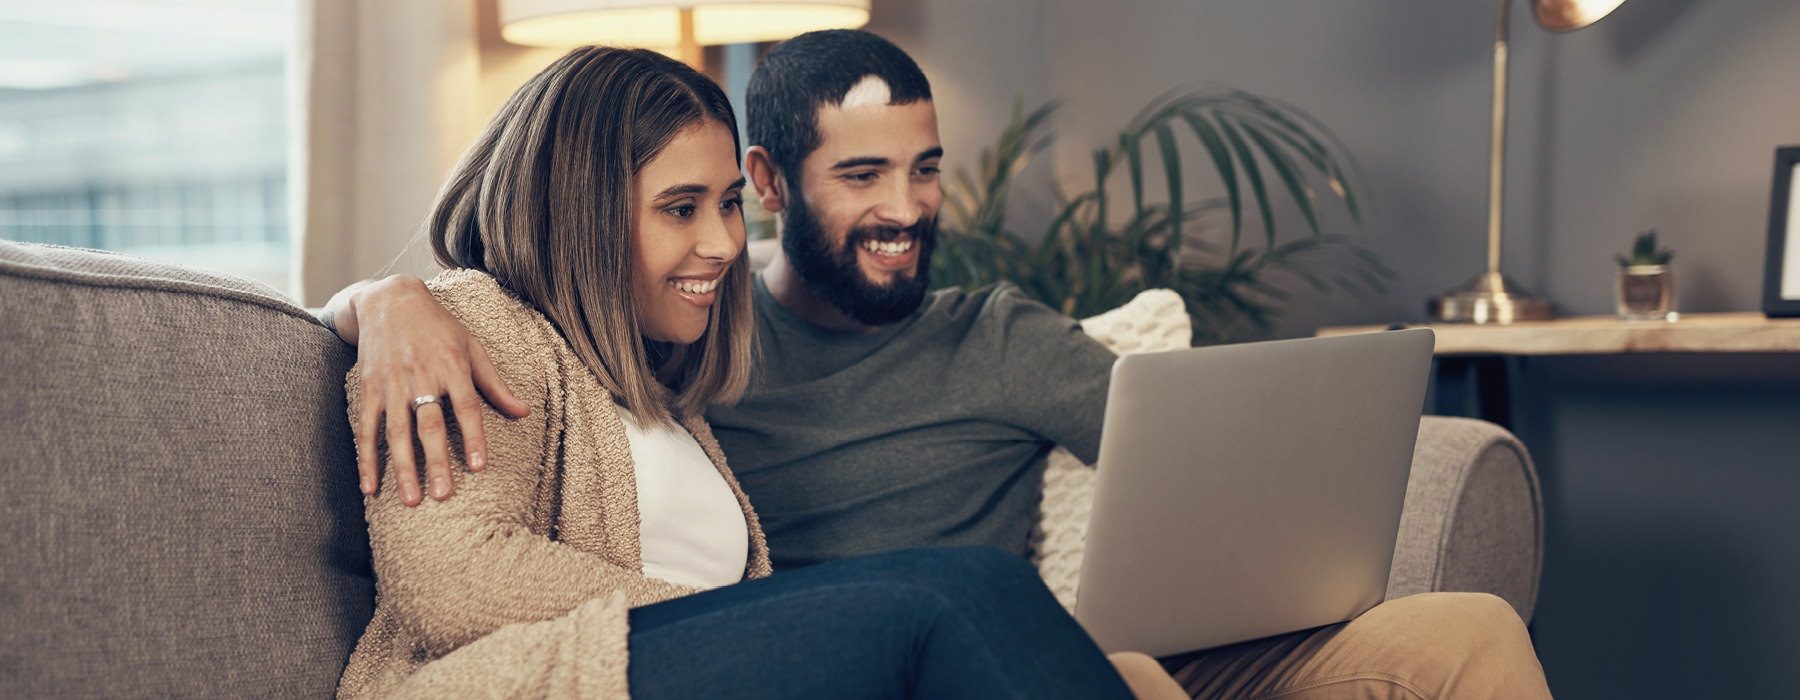 Man and woman on laptop sitting on couch.